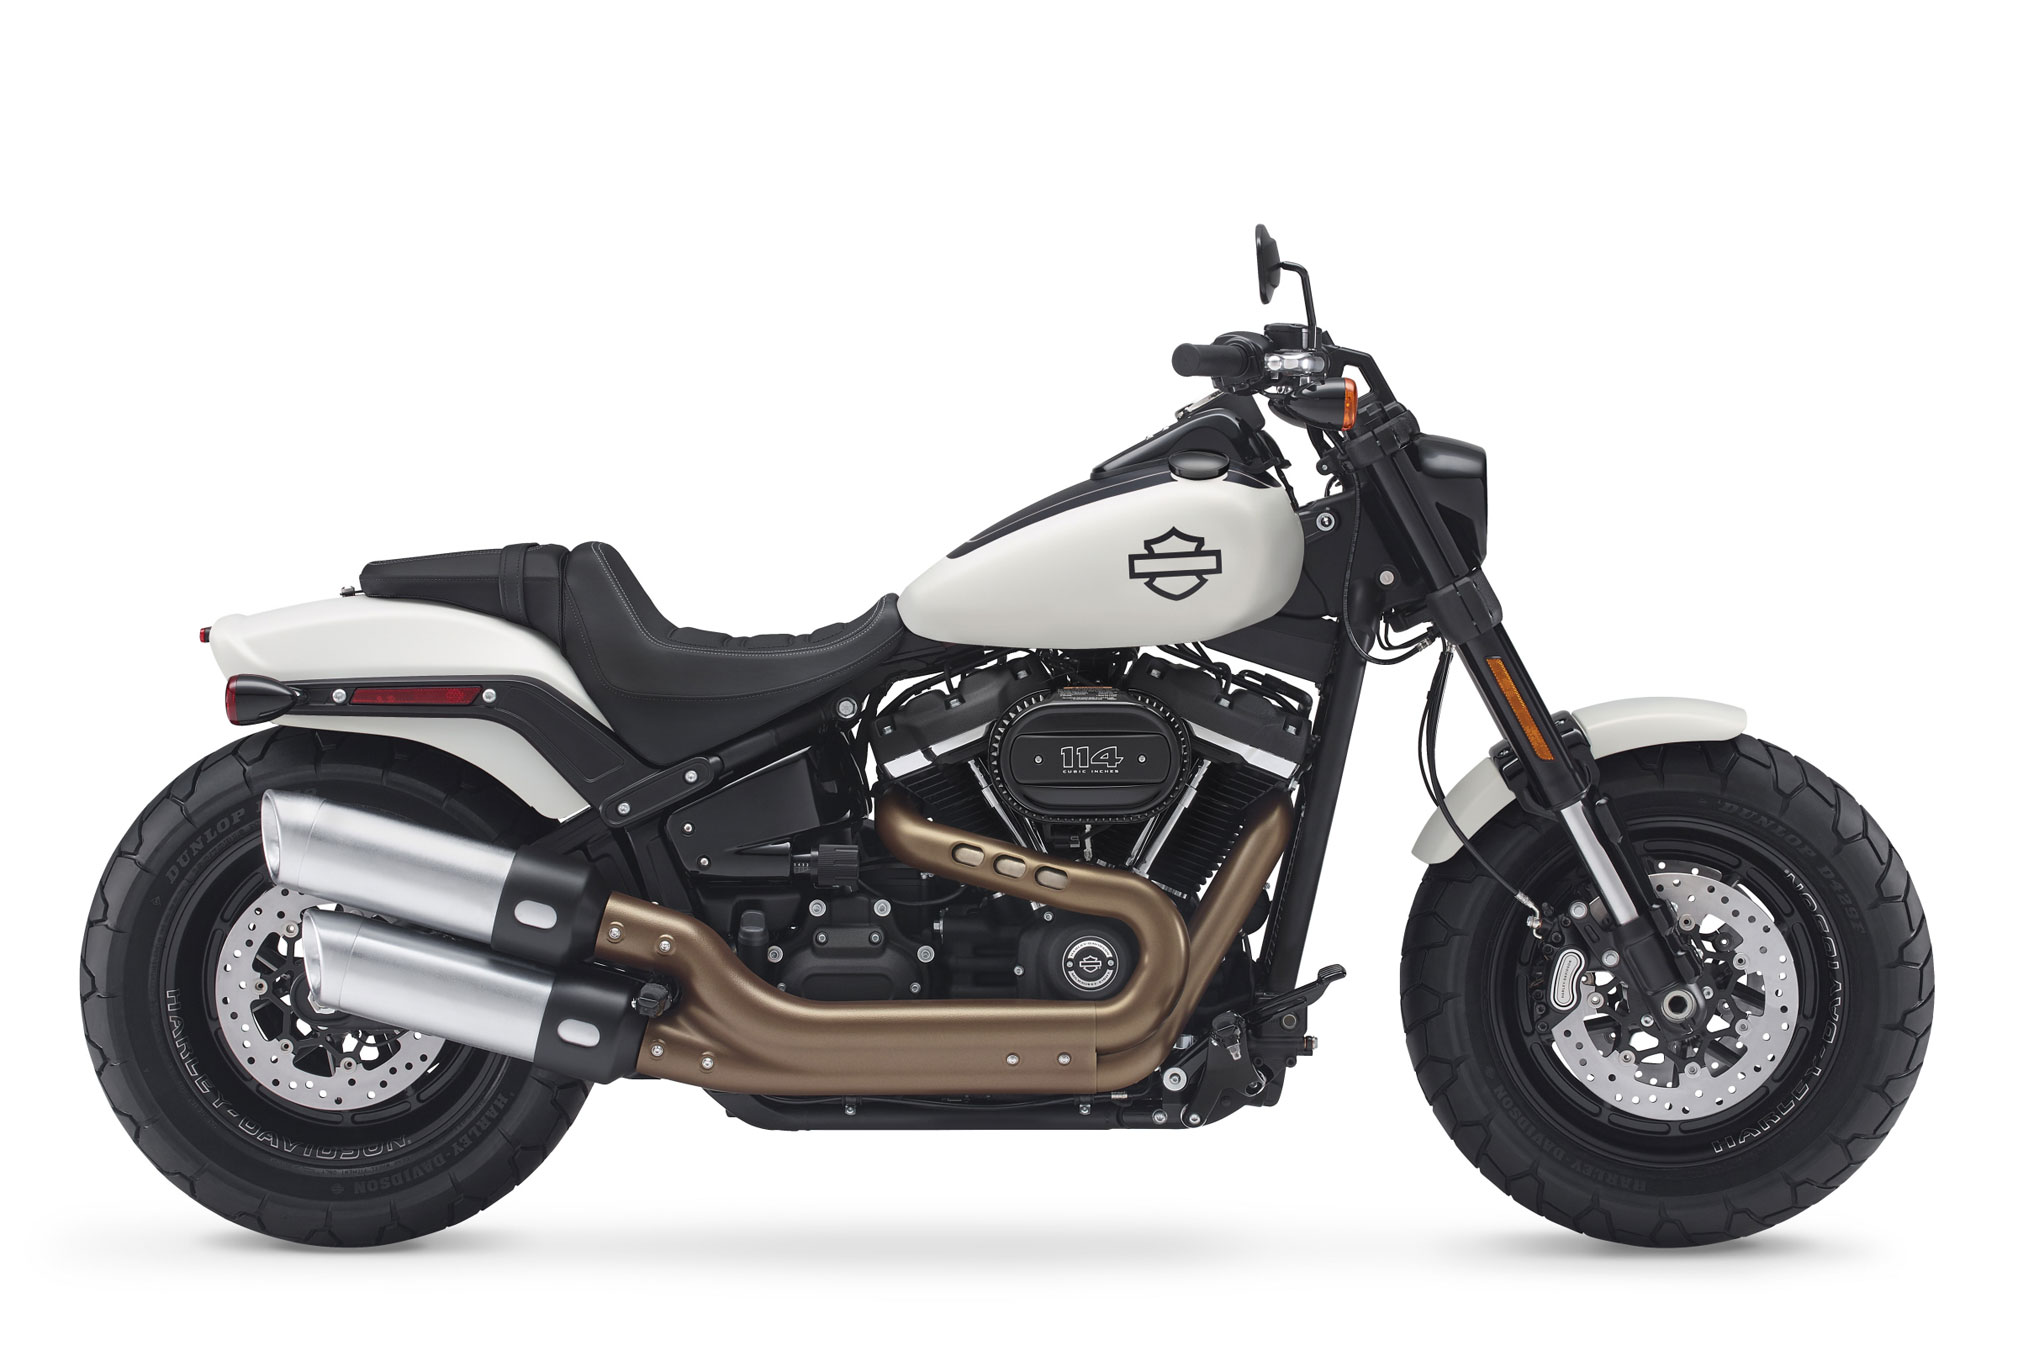 New Models 2019 Harley Davidson Fxdr 114 Review: 2018 Harley-Davidson Fat Bob 114 Review • Total Motorcycle